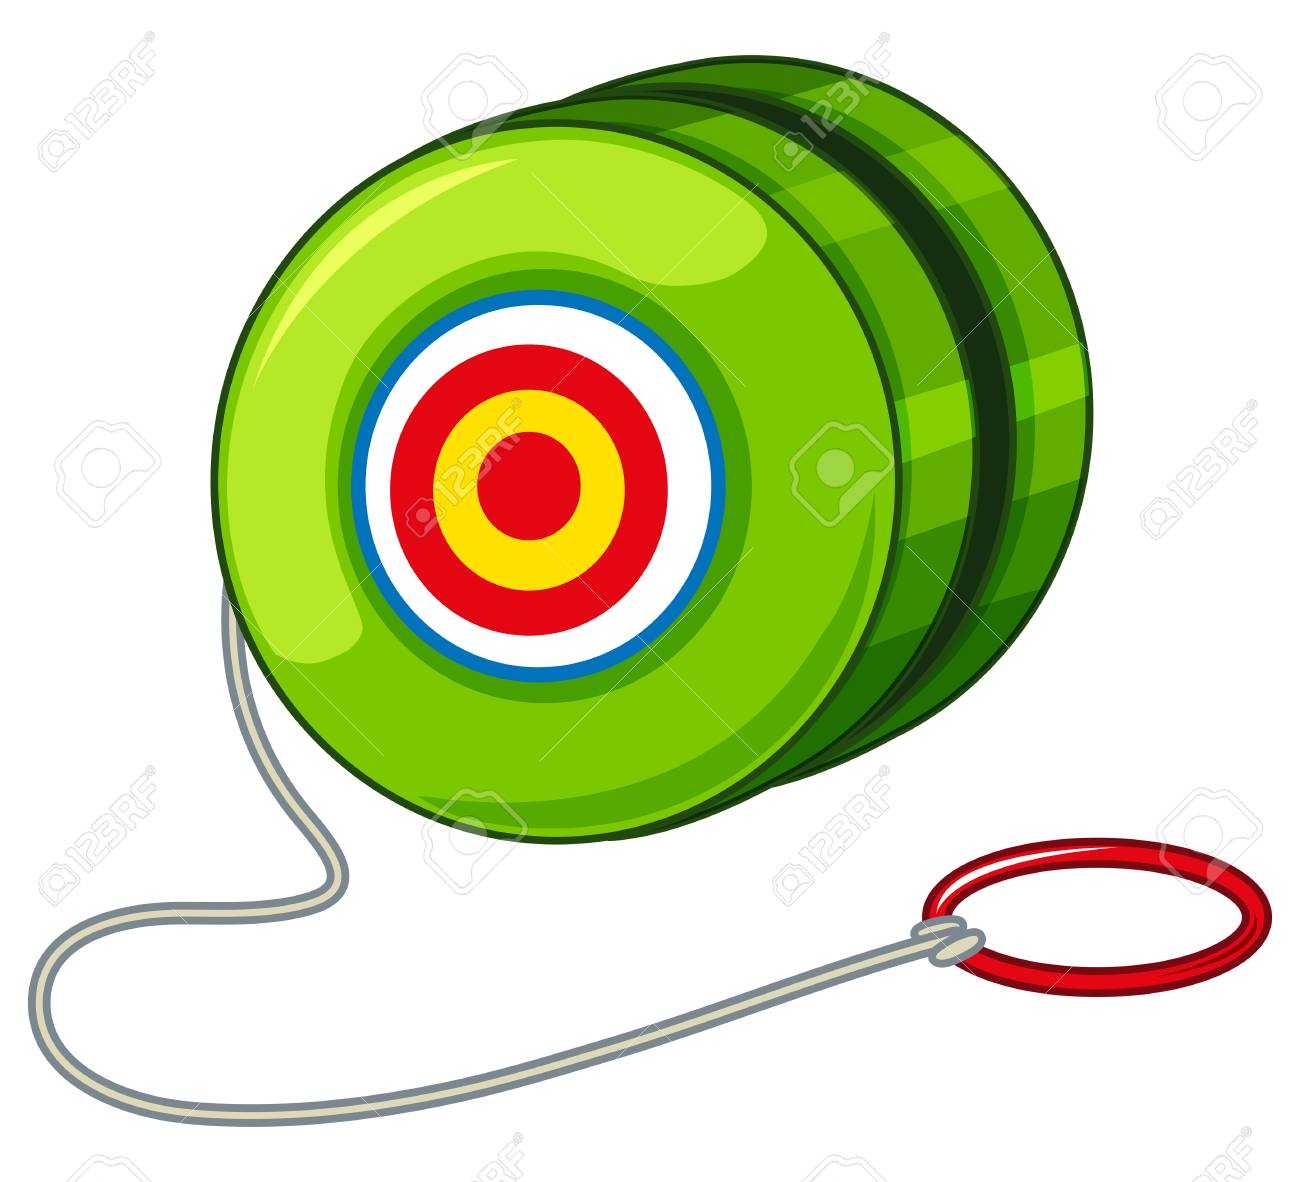 Green yoyo with red ring illustration.